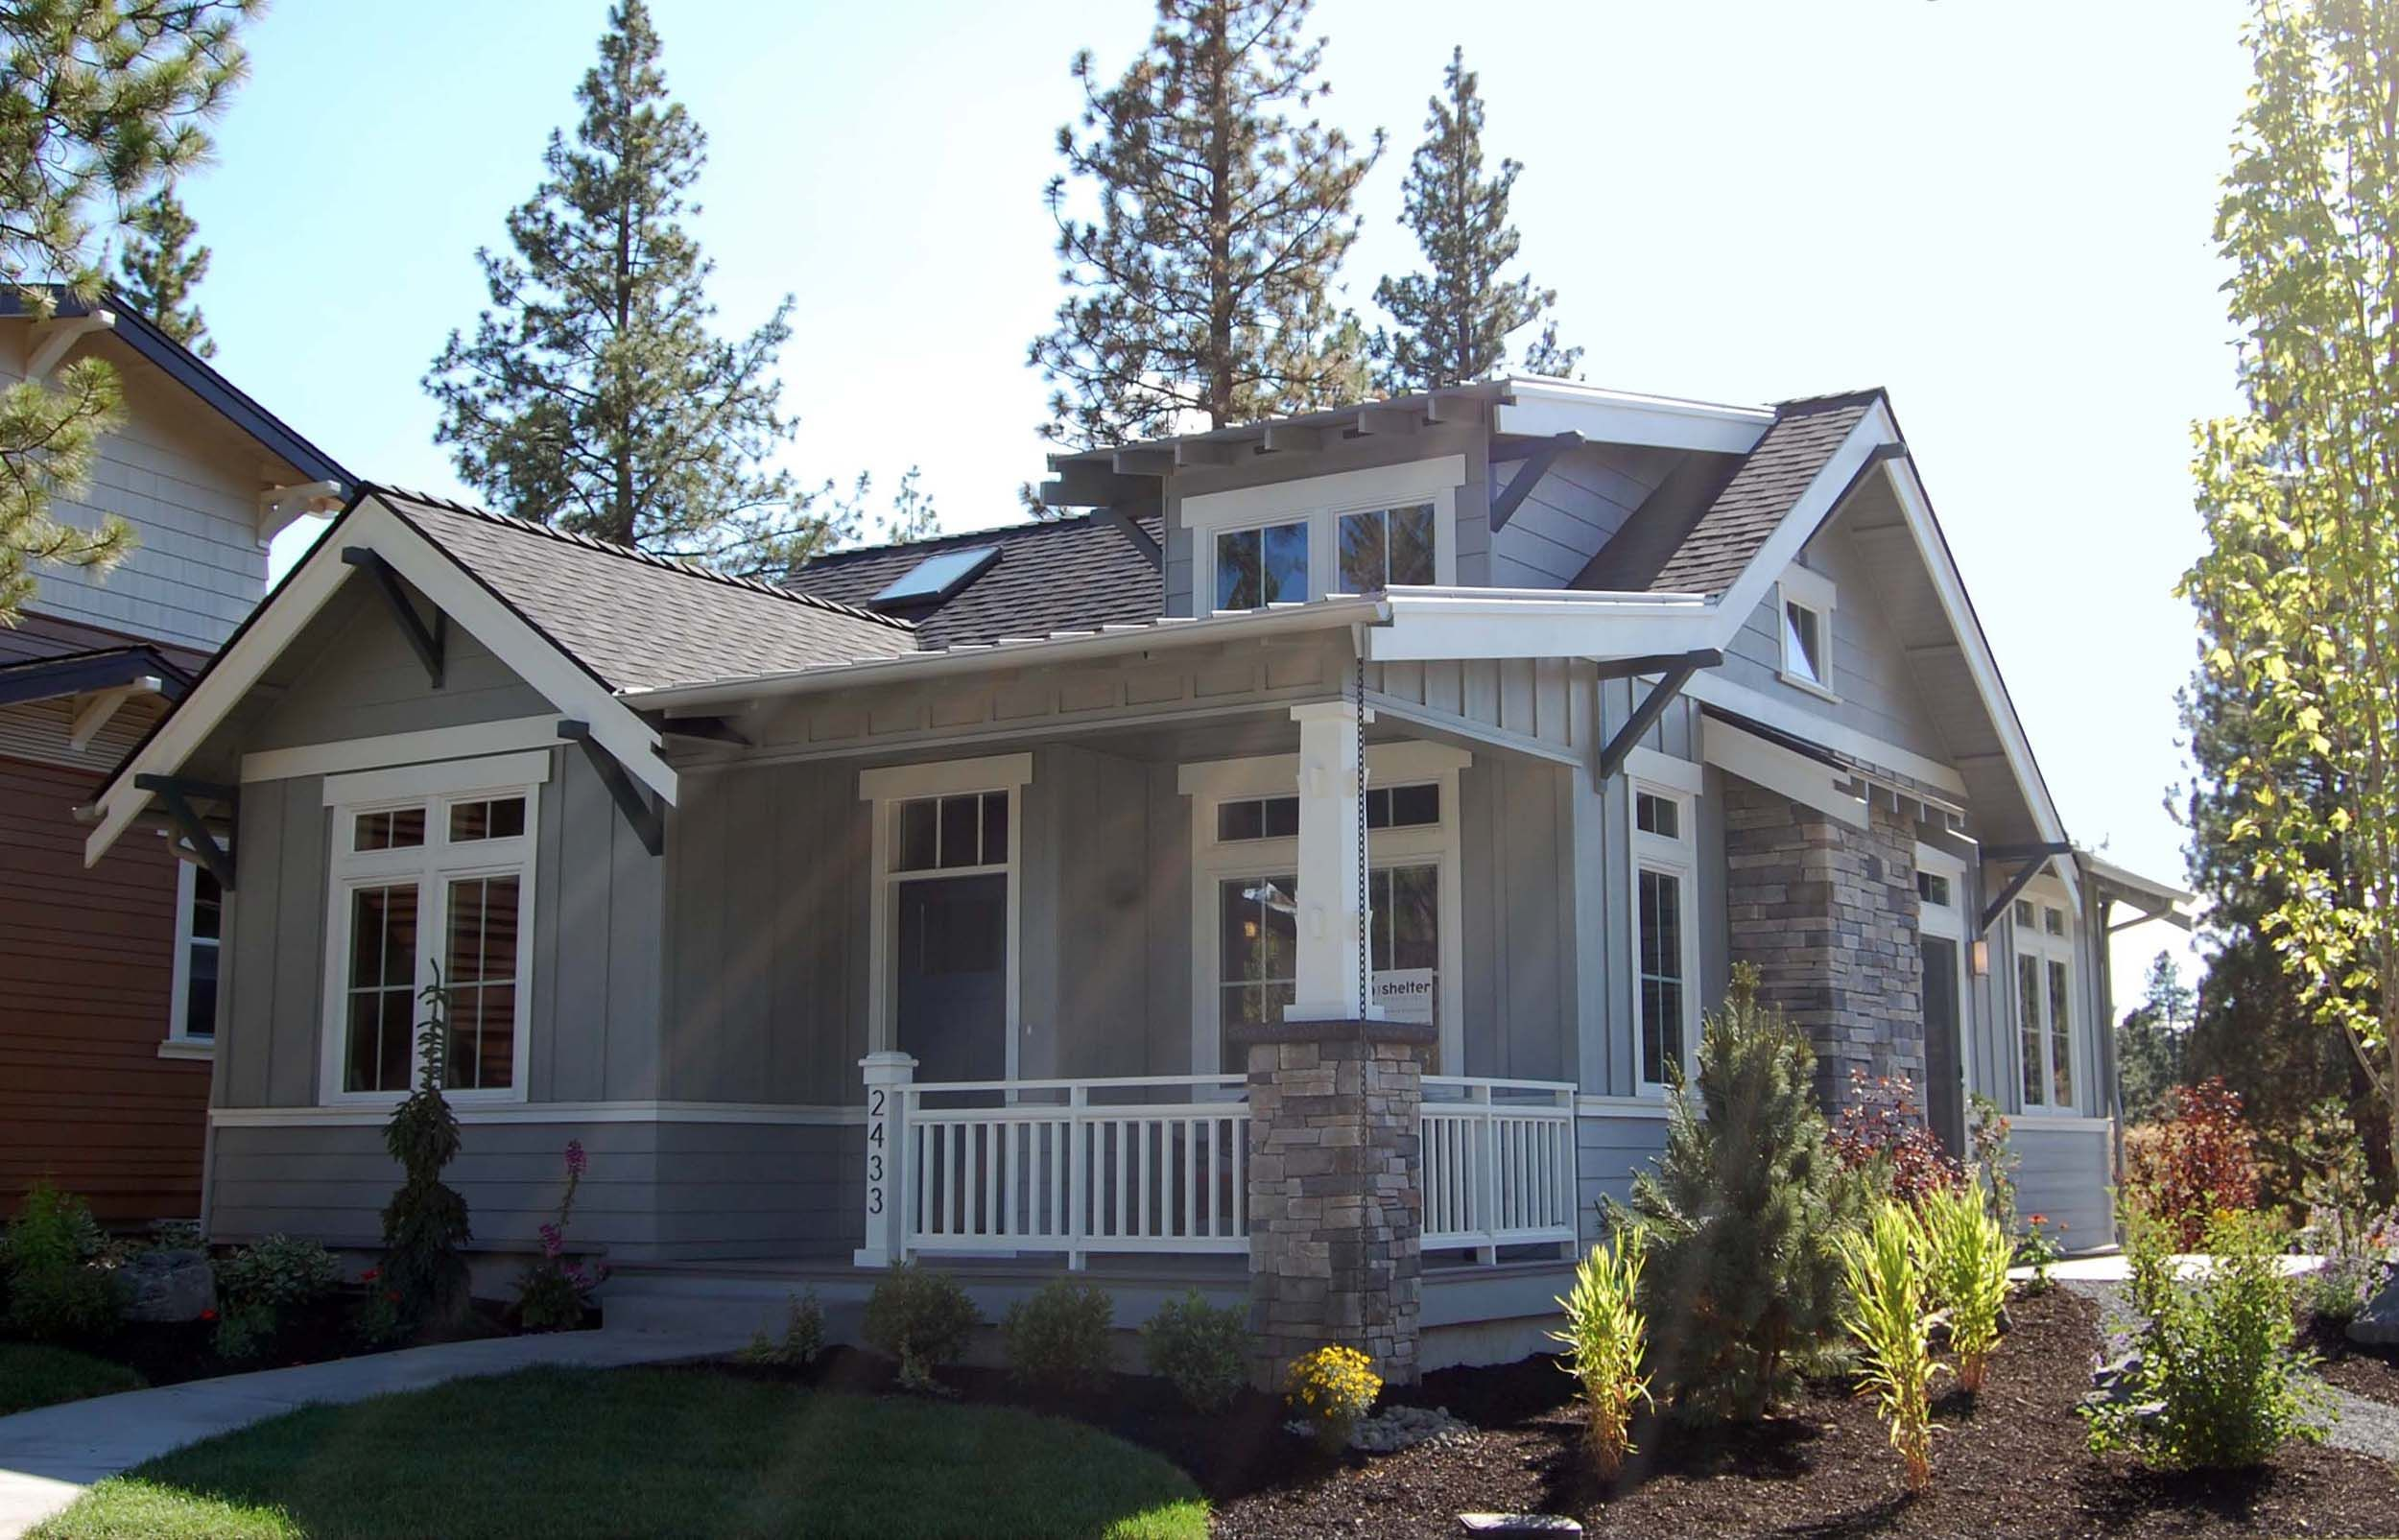 108d0d078b472663d6f2c0d66bdc19a7 Top Result 52 Best Of Craftsman Style Home Plans Photography 2017 Hdj5